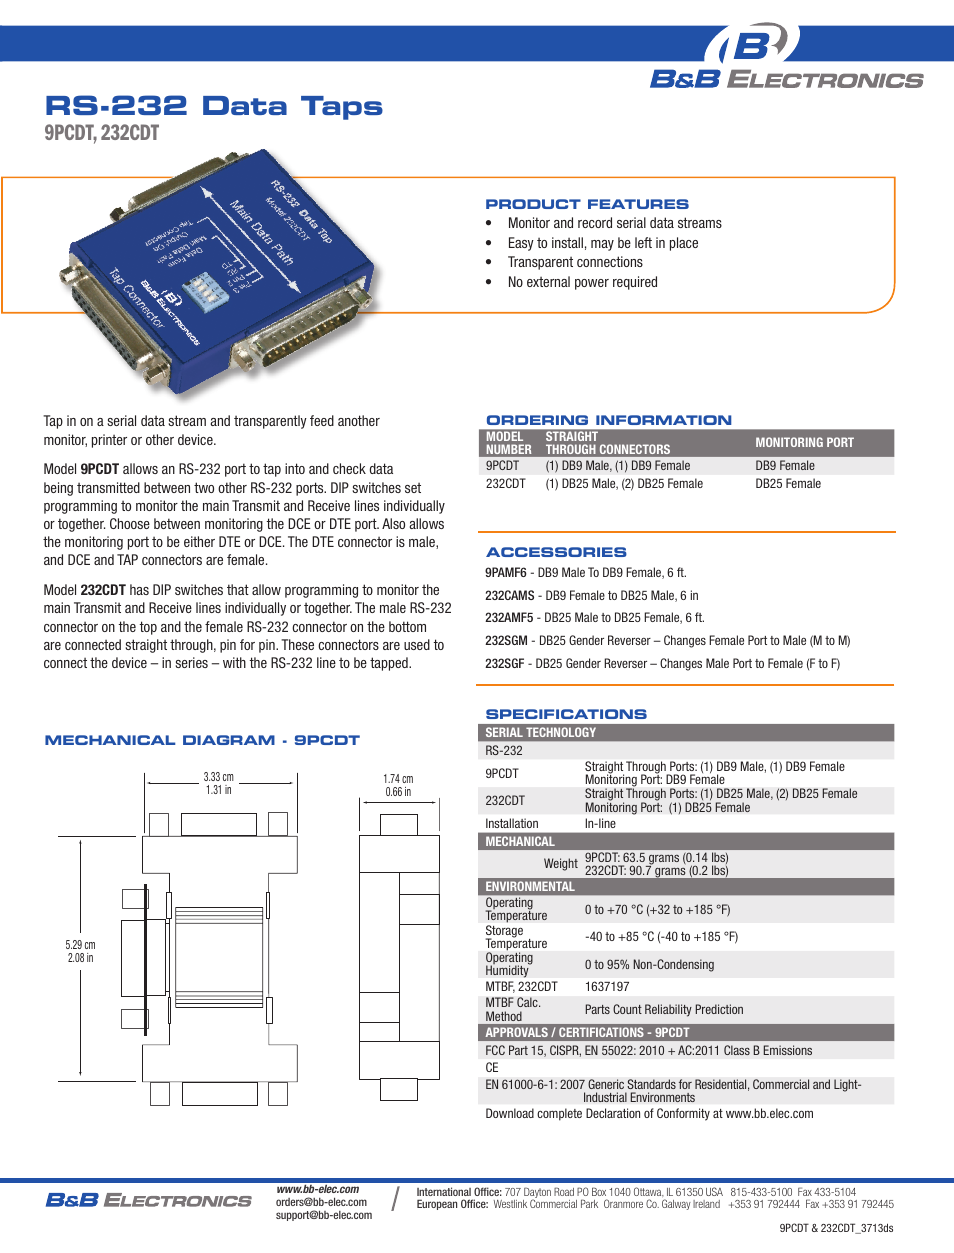 Data Tap Rs-232 B&B Electronics Networking & Connectivity ...